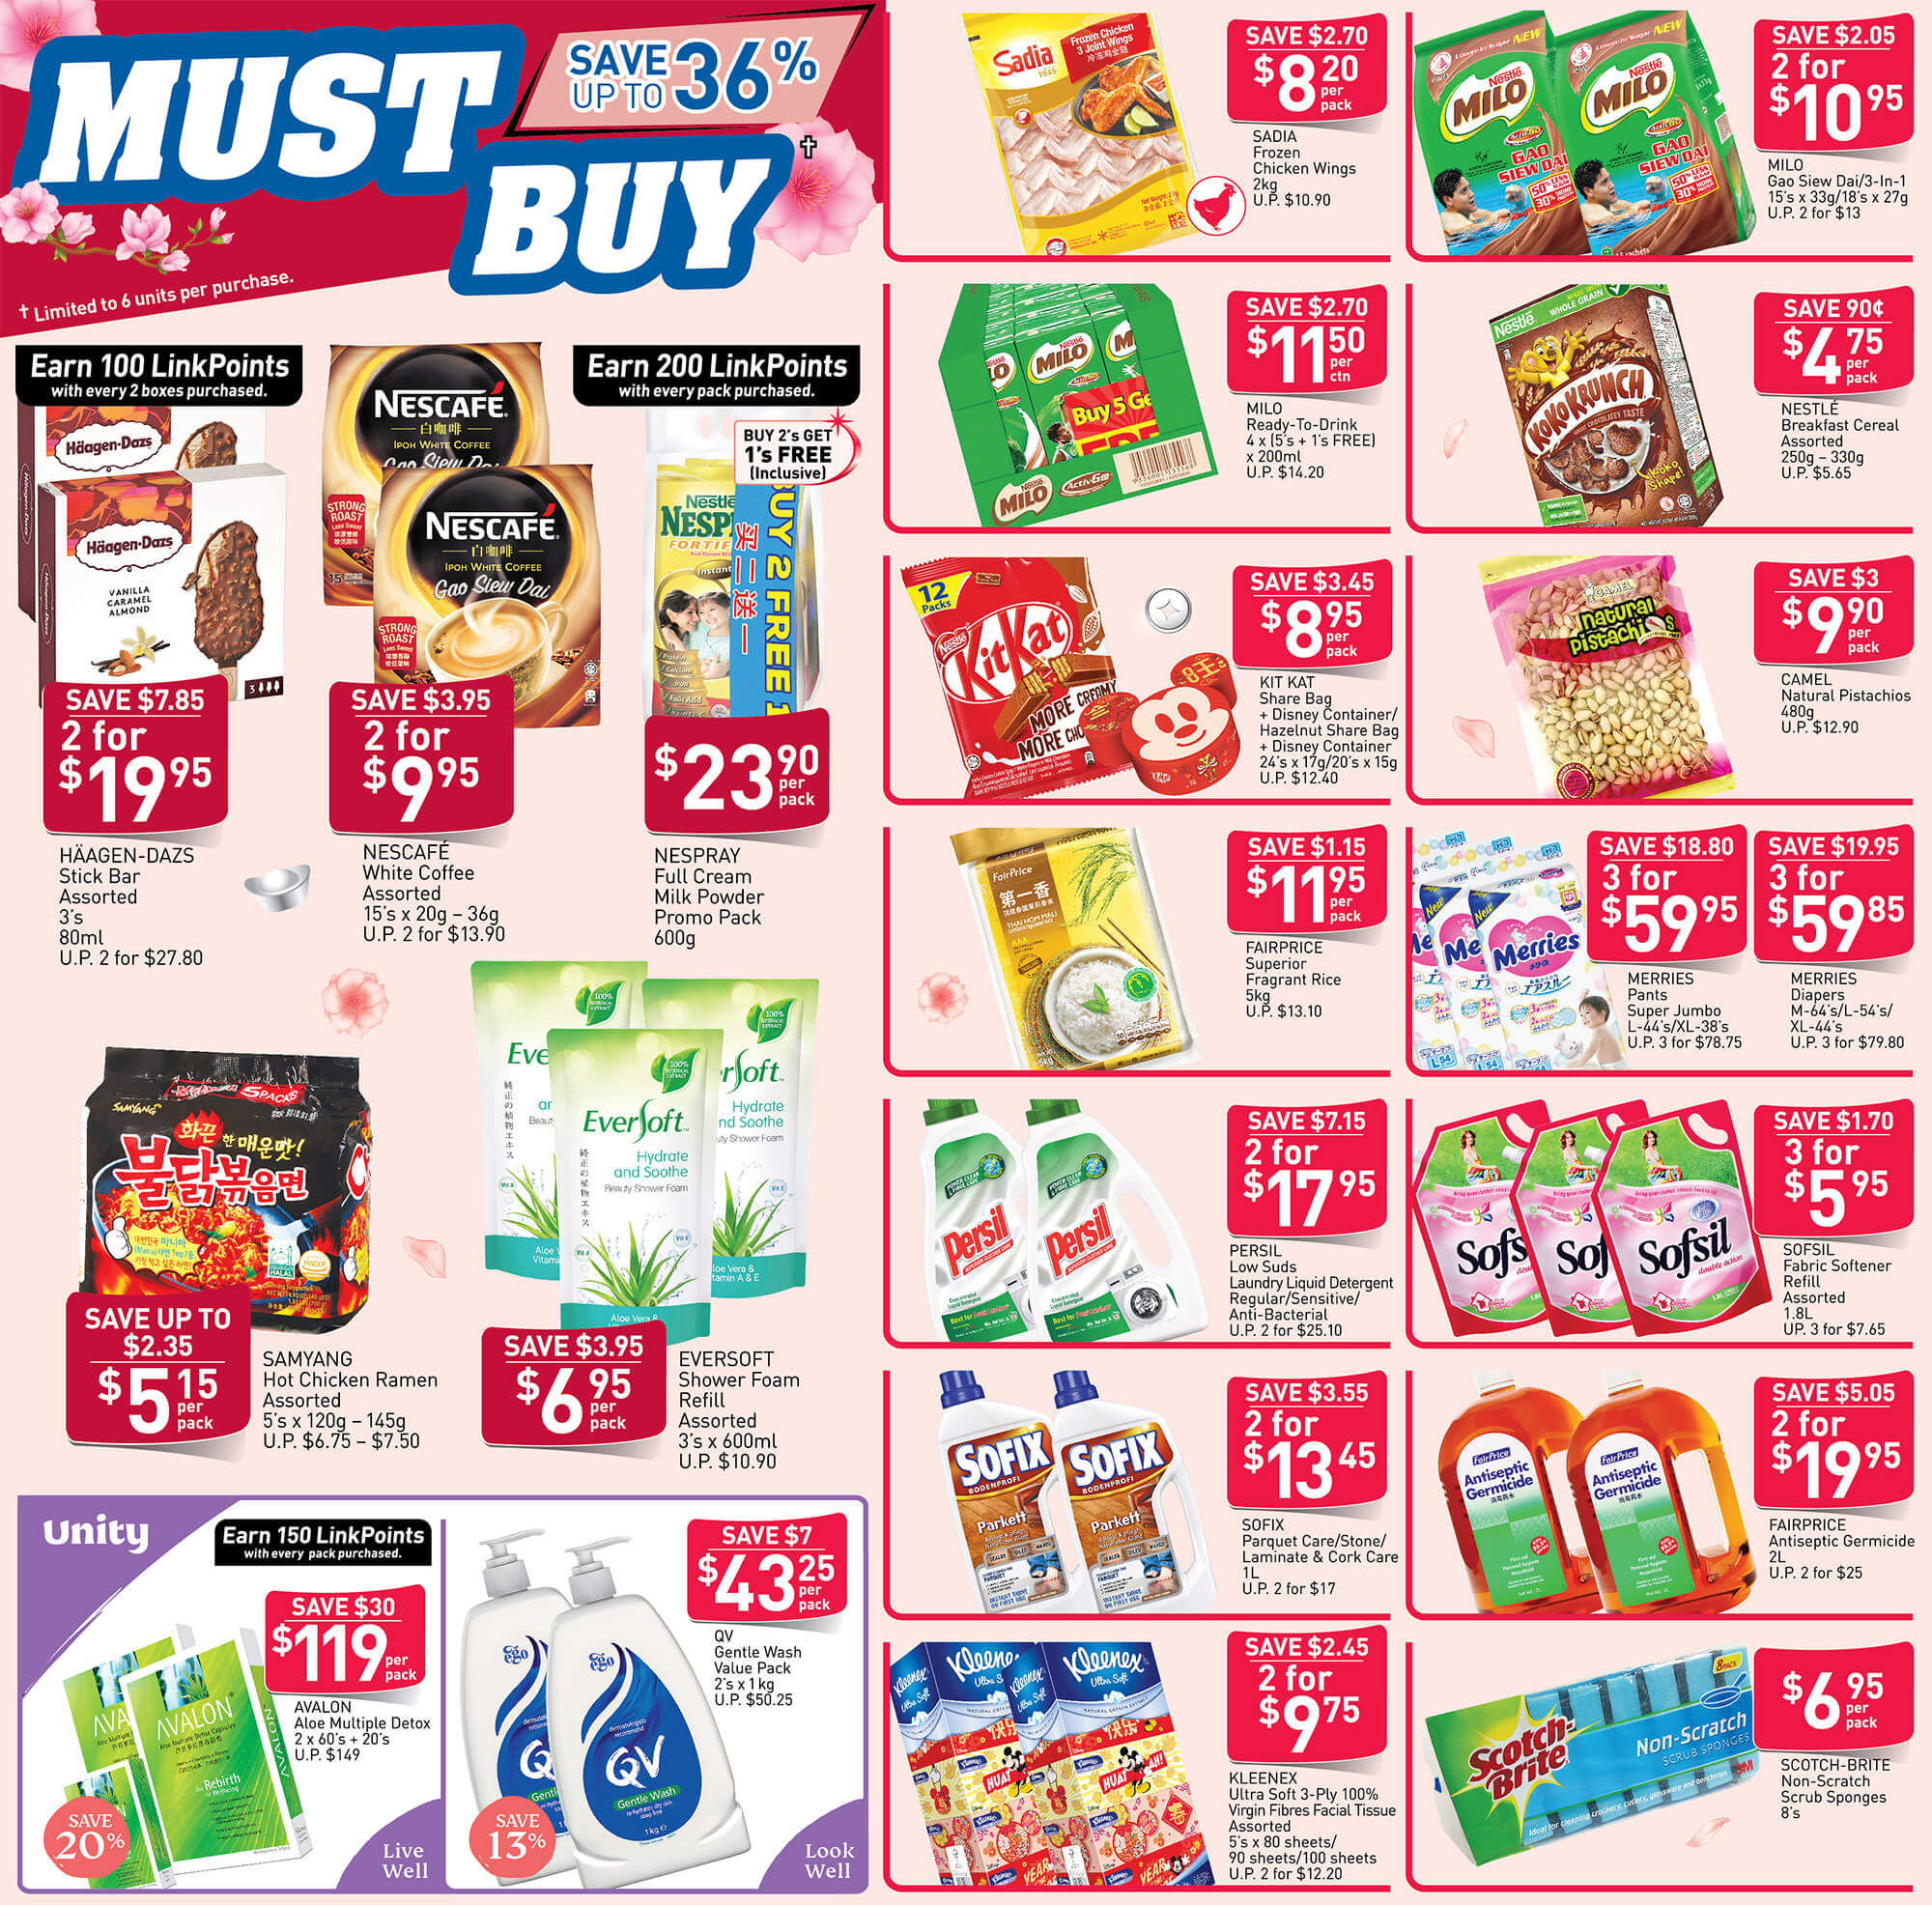 NTUC FairPrice SG Your Weekly Saver Promotions 9-15 Jan 2020 | Why Not Deals 9 & Promotions